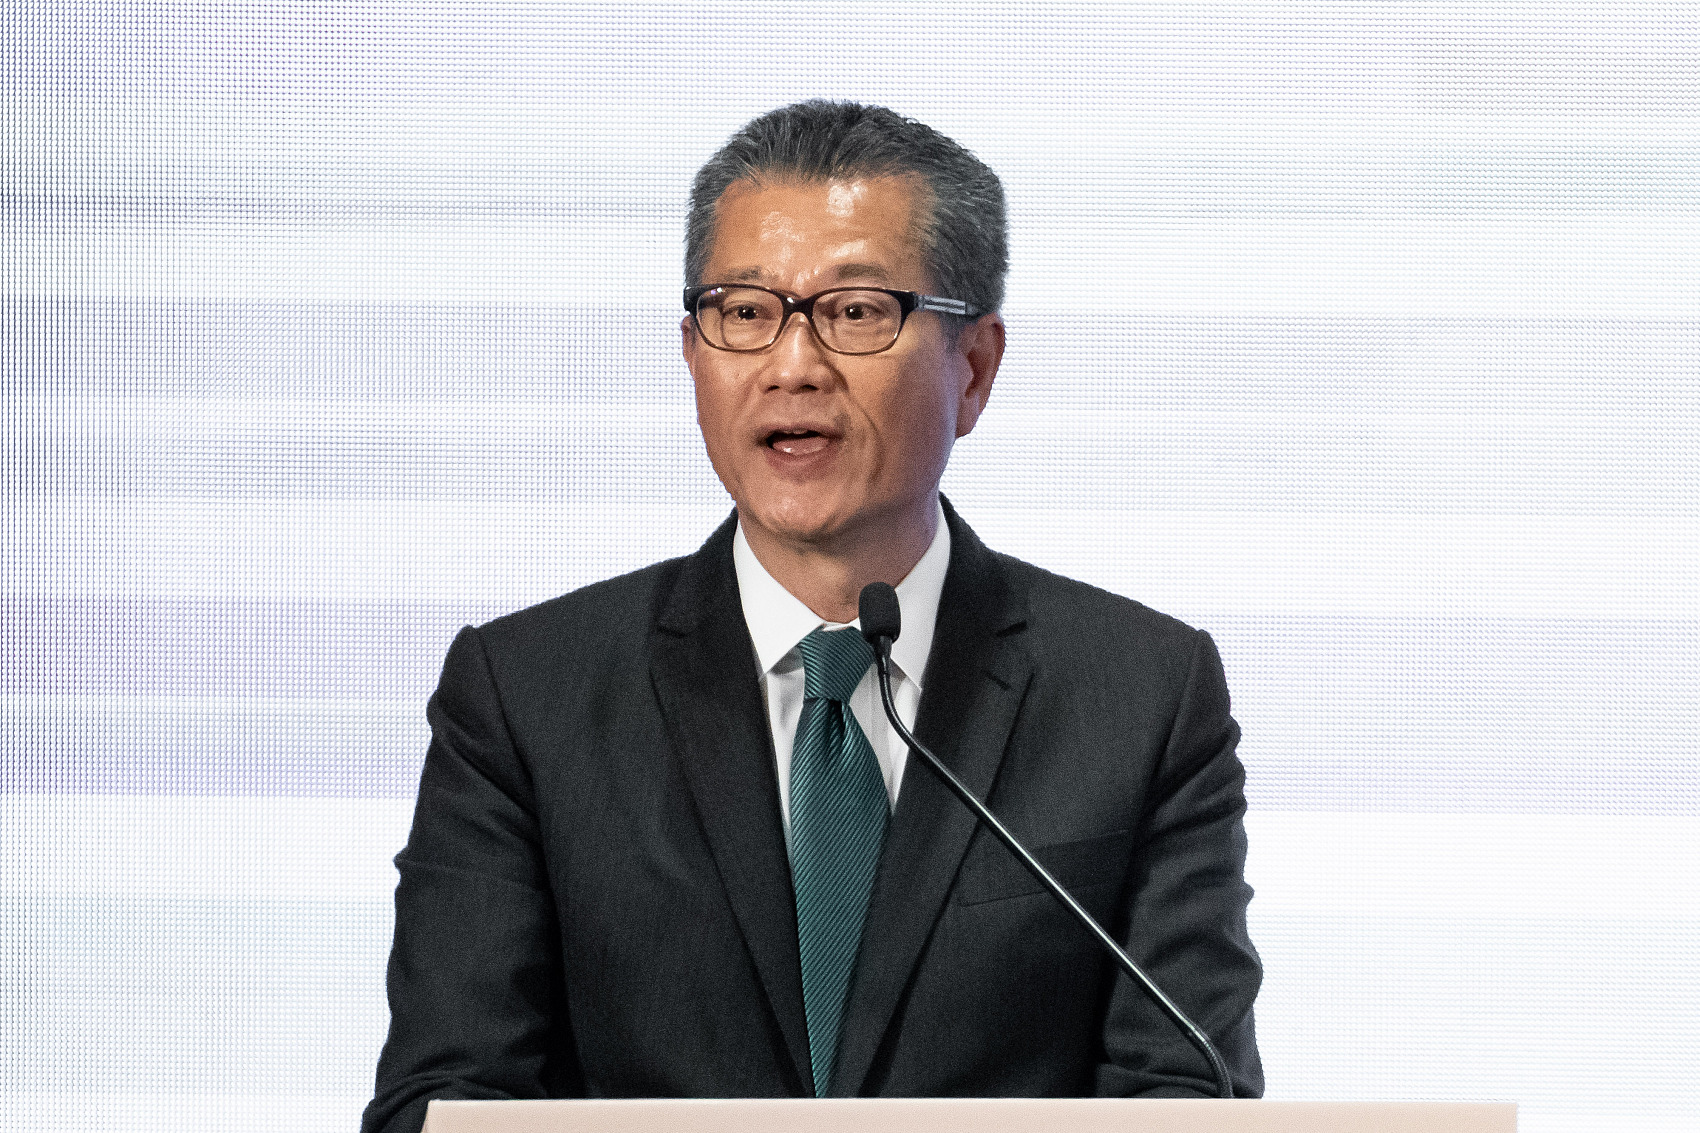 HKSAR government to give $1,280 handout to permanent residents: Financial Secretary